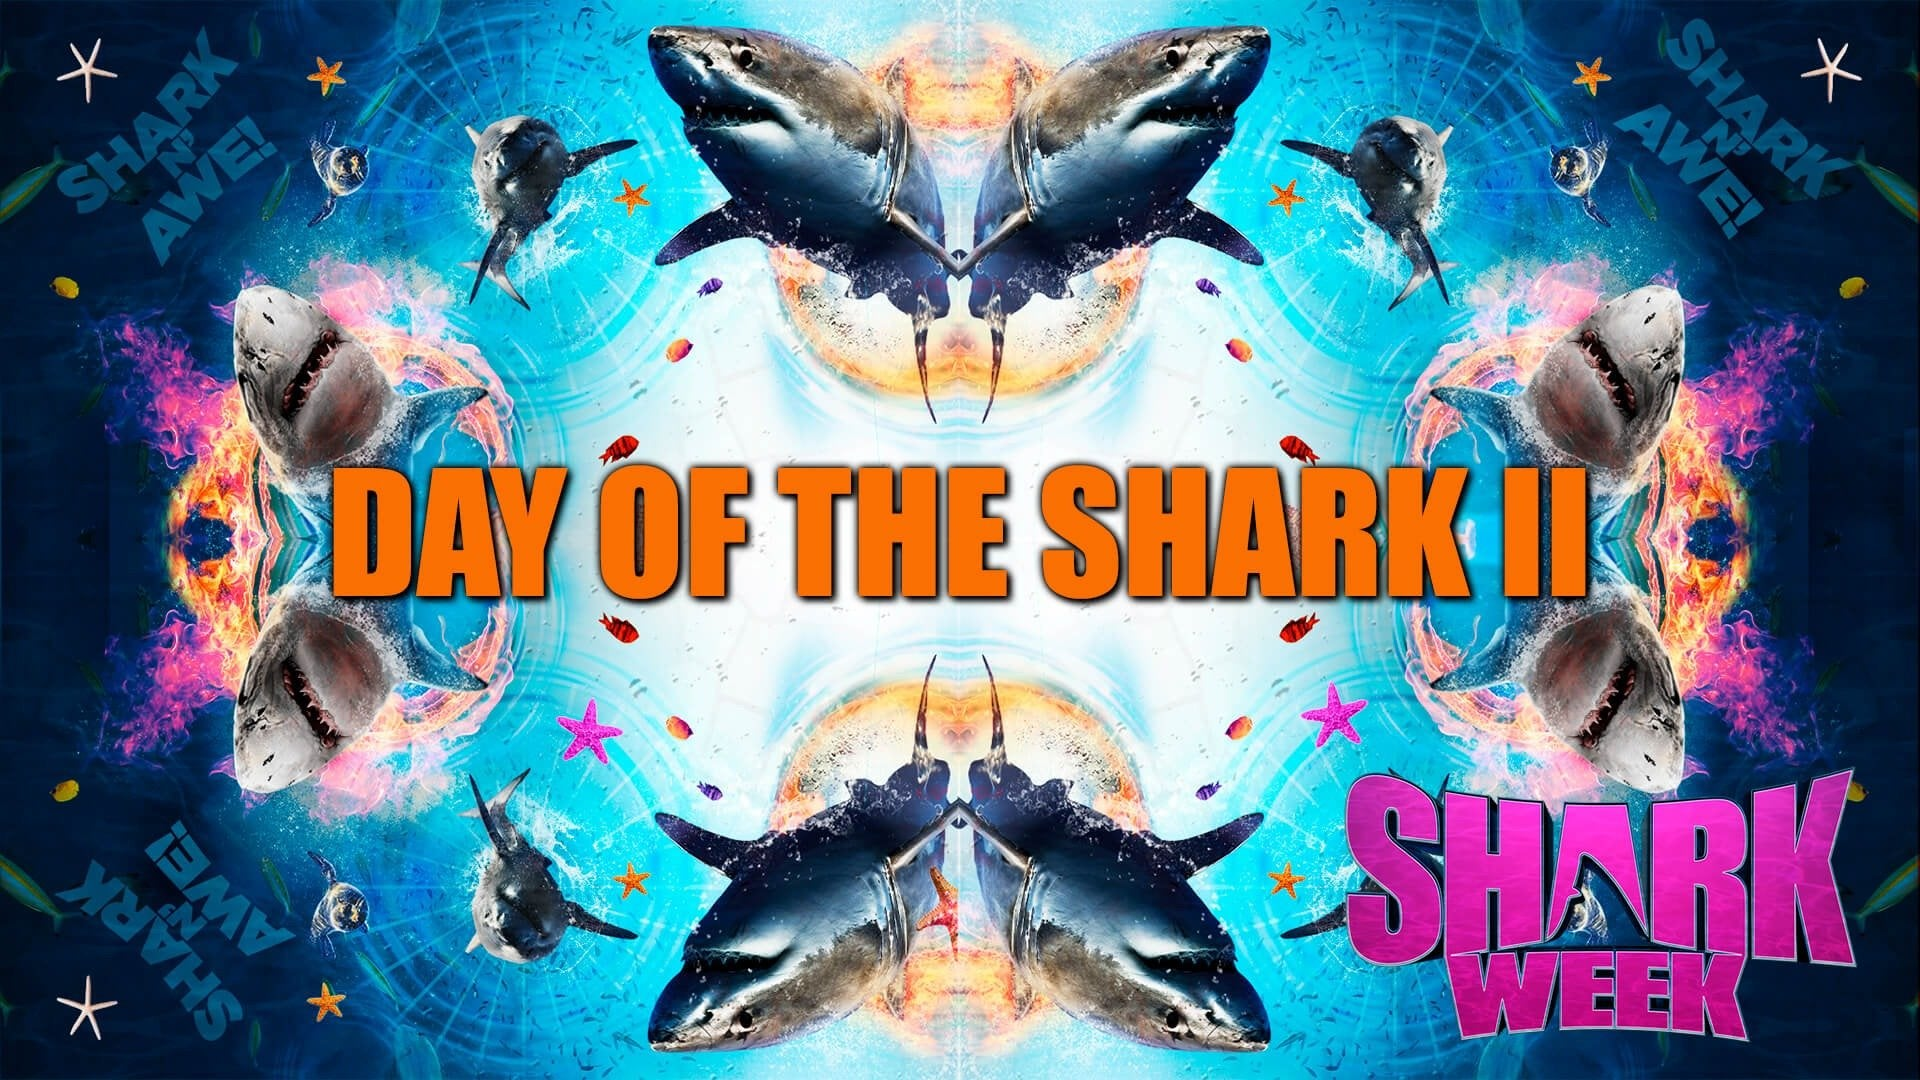 Day of the Shark II